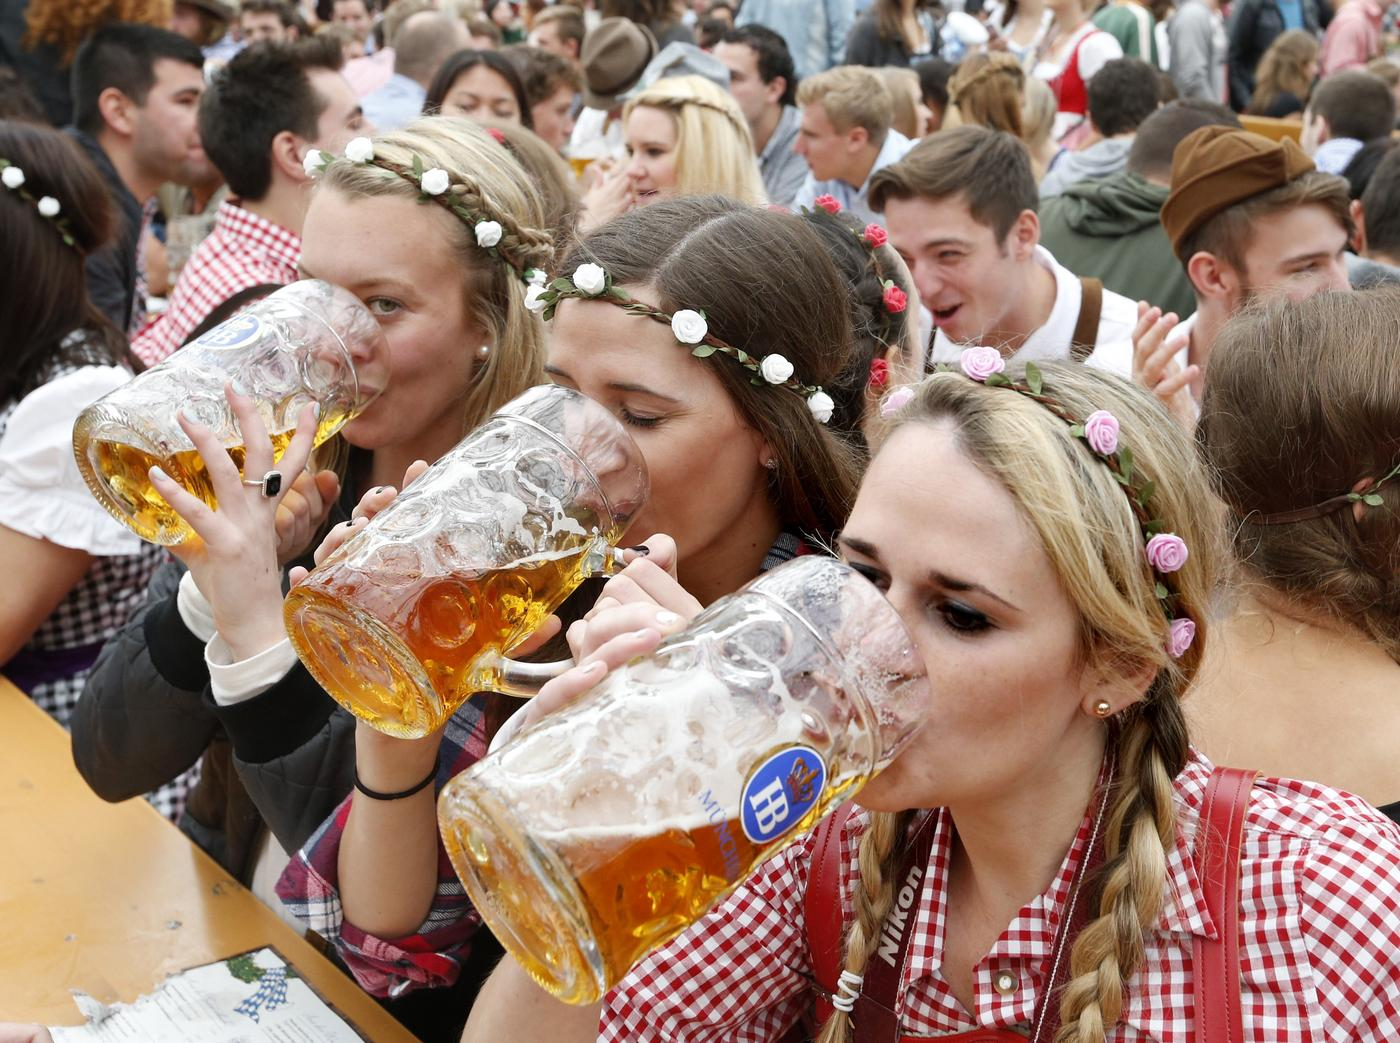 Next stop, Oktoberfest! Beer may be good for your brain, study suggests